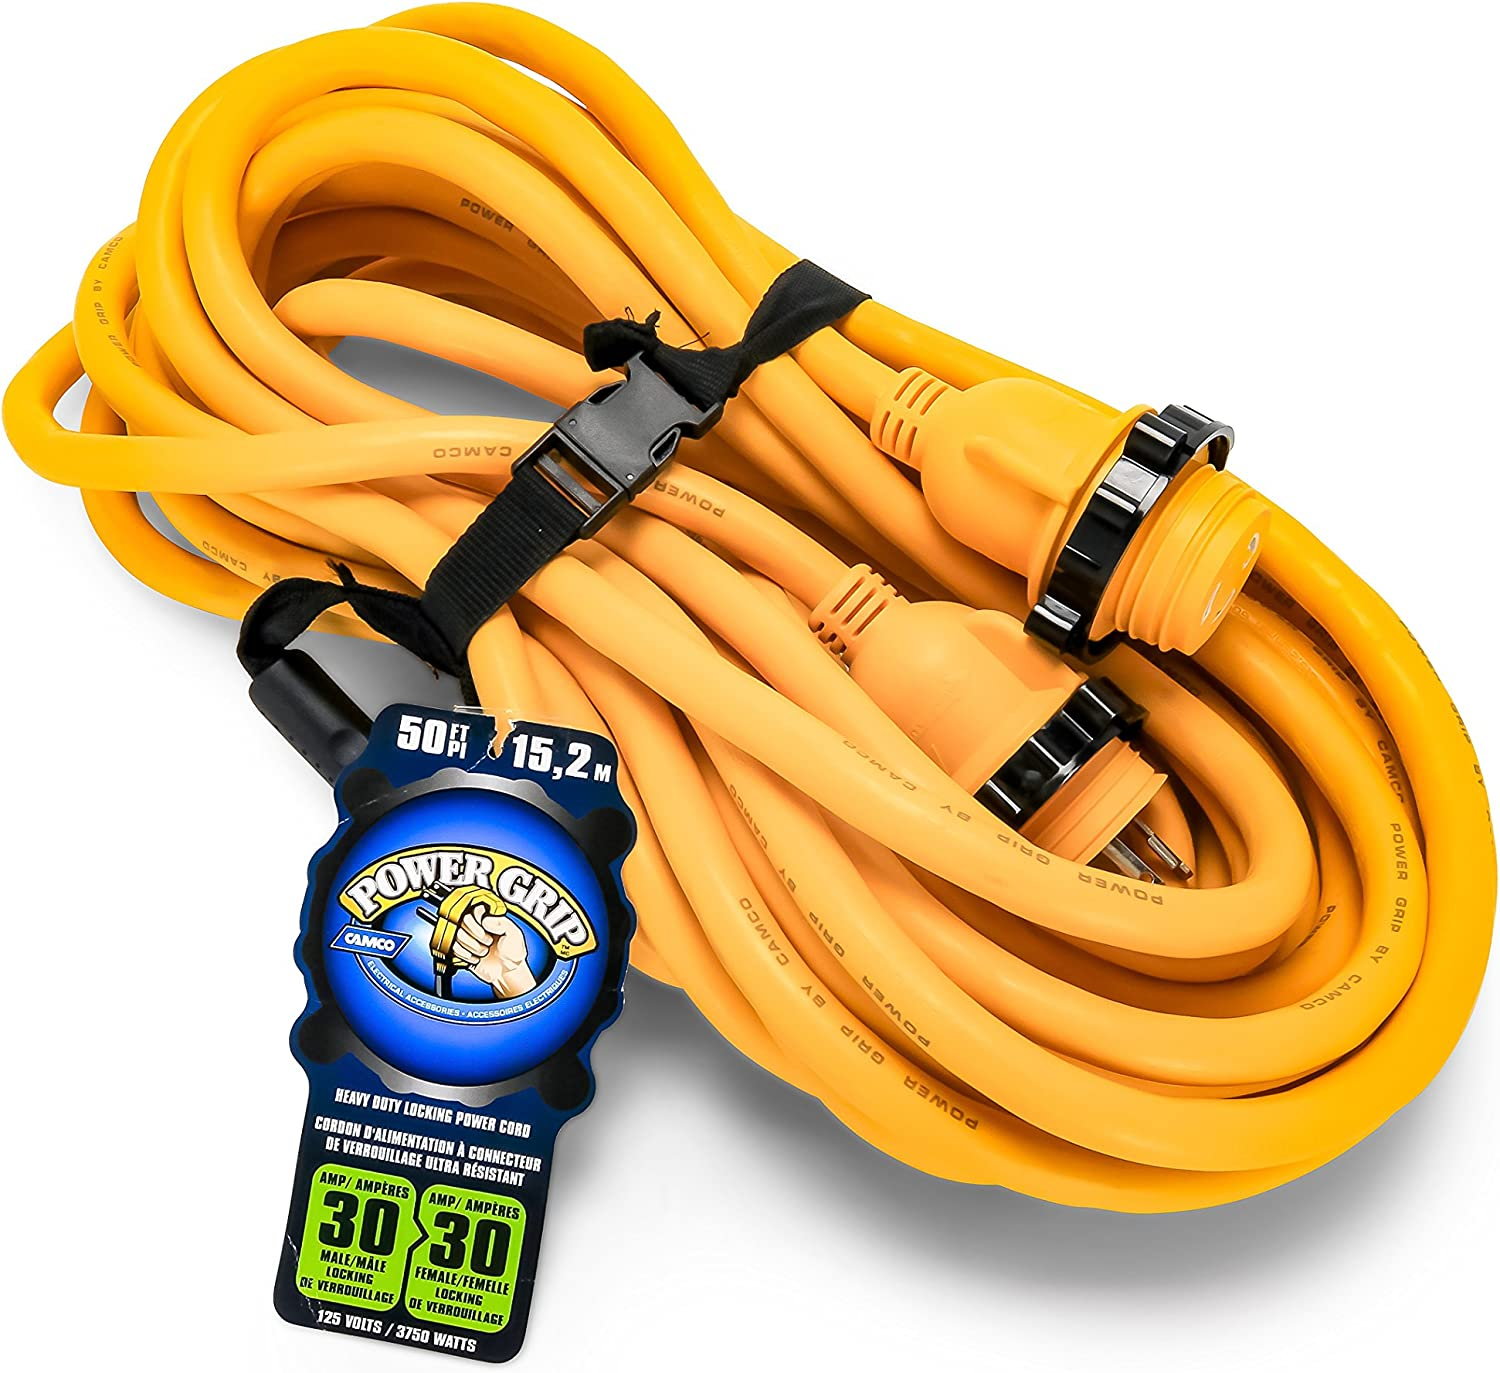 Camco 50' PowerGrip Marine Extension Cord with 30M/30F Locking Adapters   Allows for Easy Boat Connection to Distant Power Outlets   Built to Last (55613): Automotive